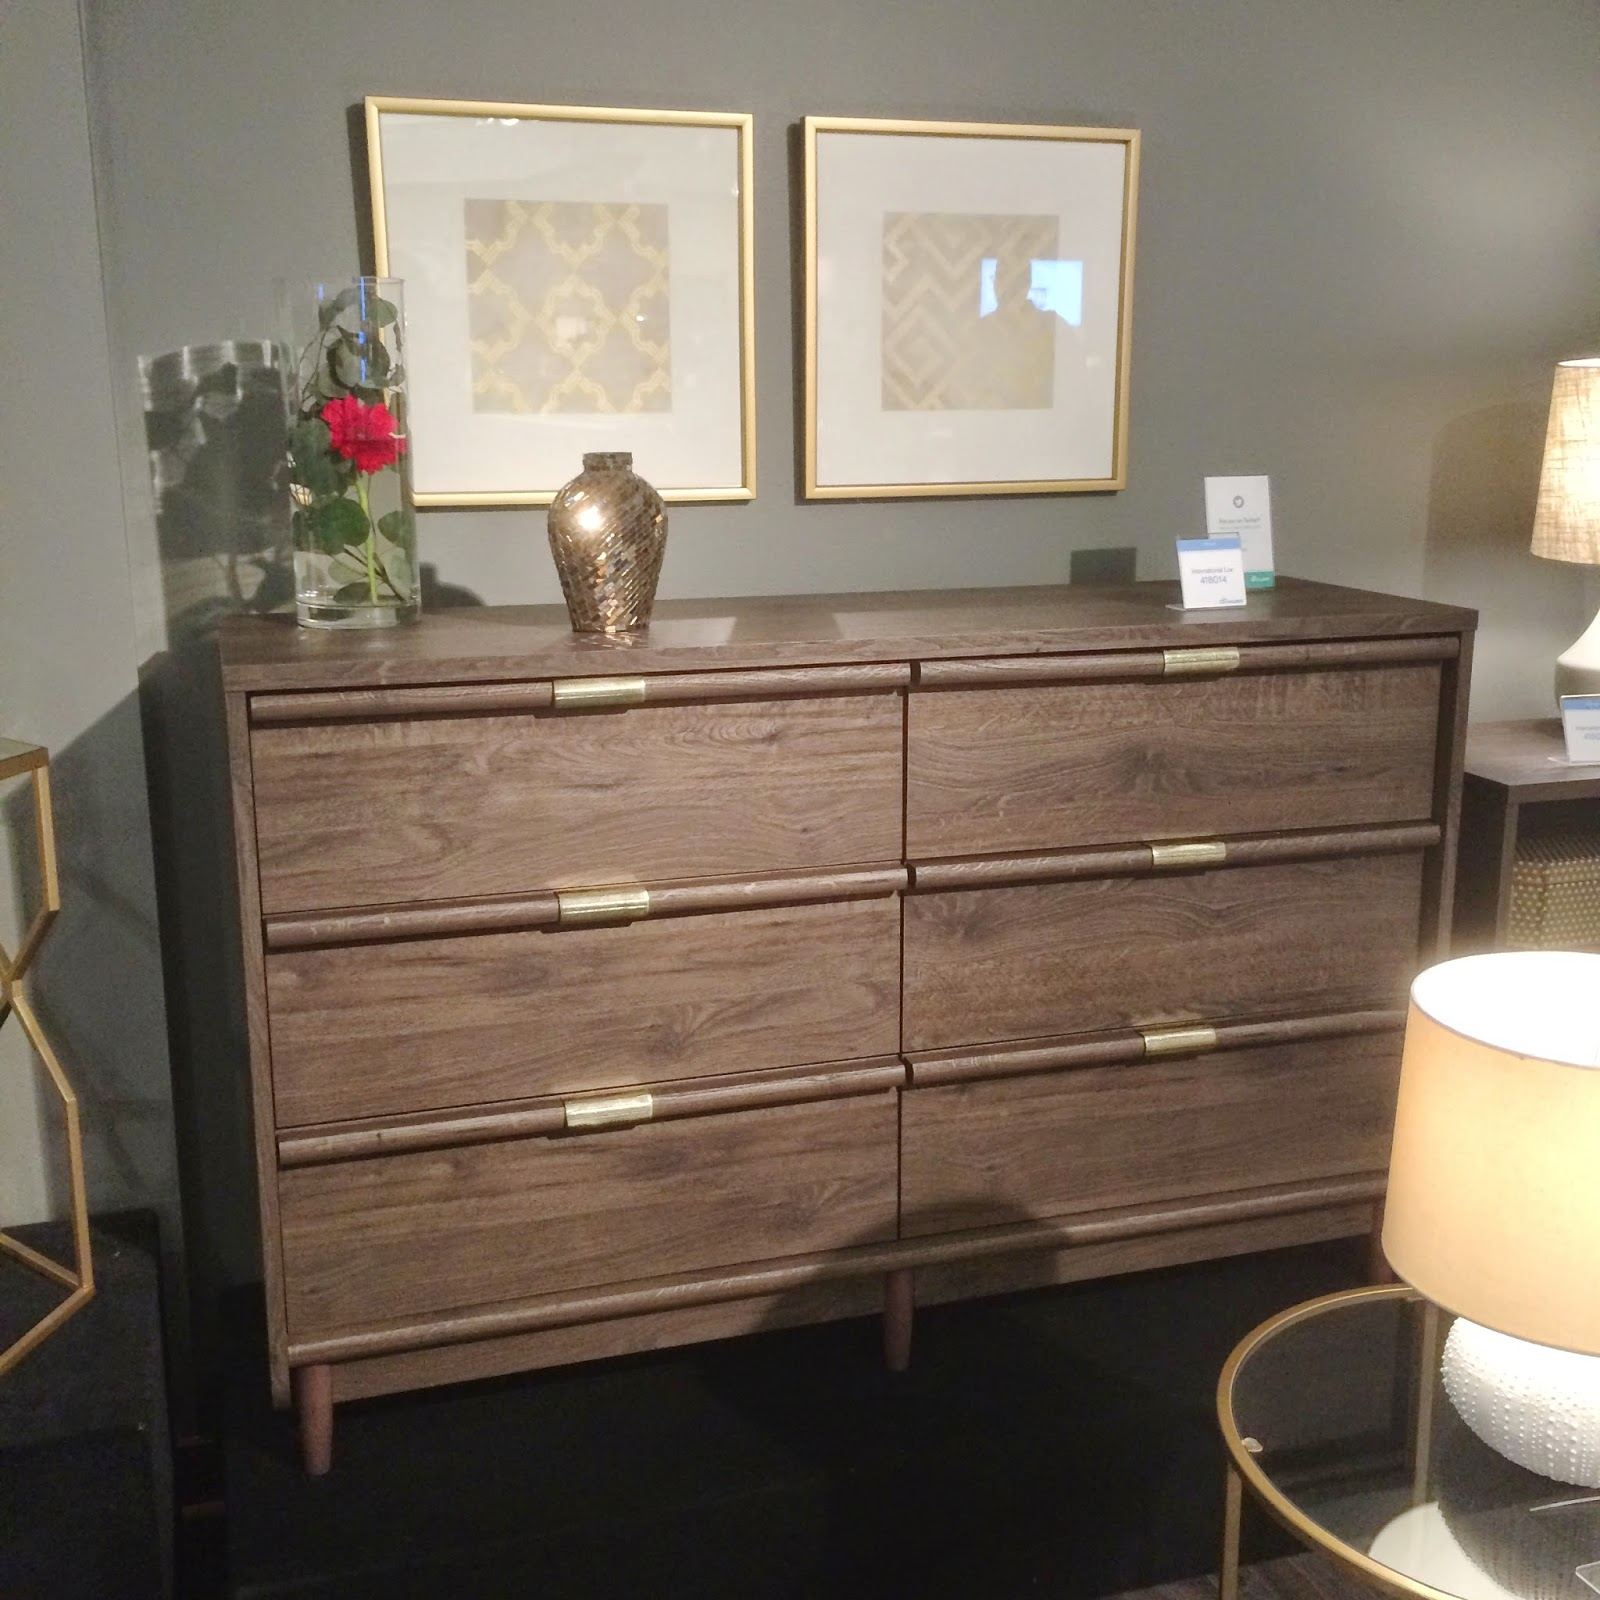 chic wooden dresser by sauder furniture on black tile floor which matched with gray wall for bedroom decor ideas